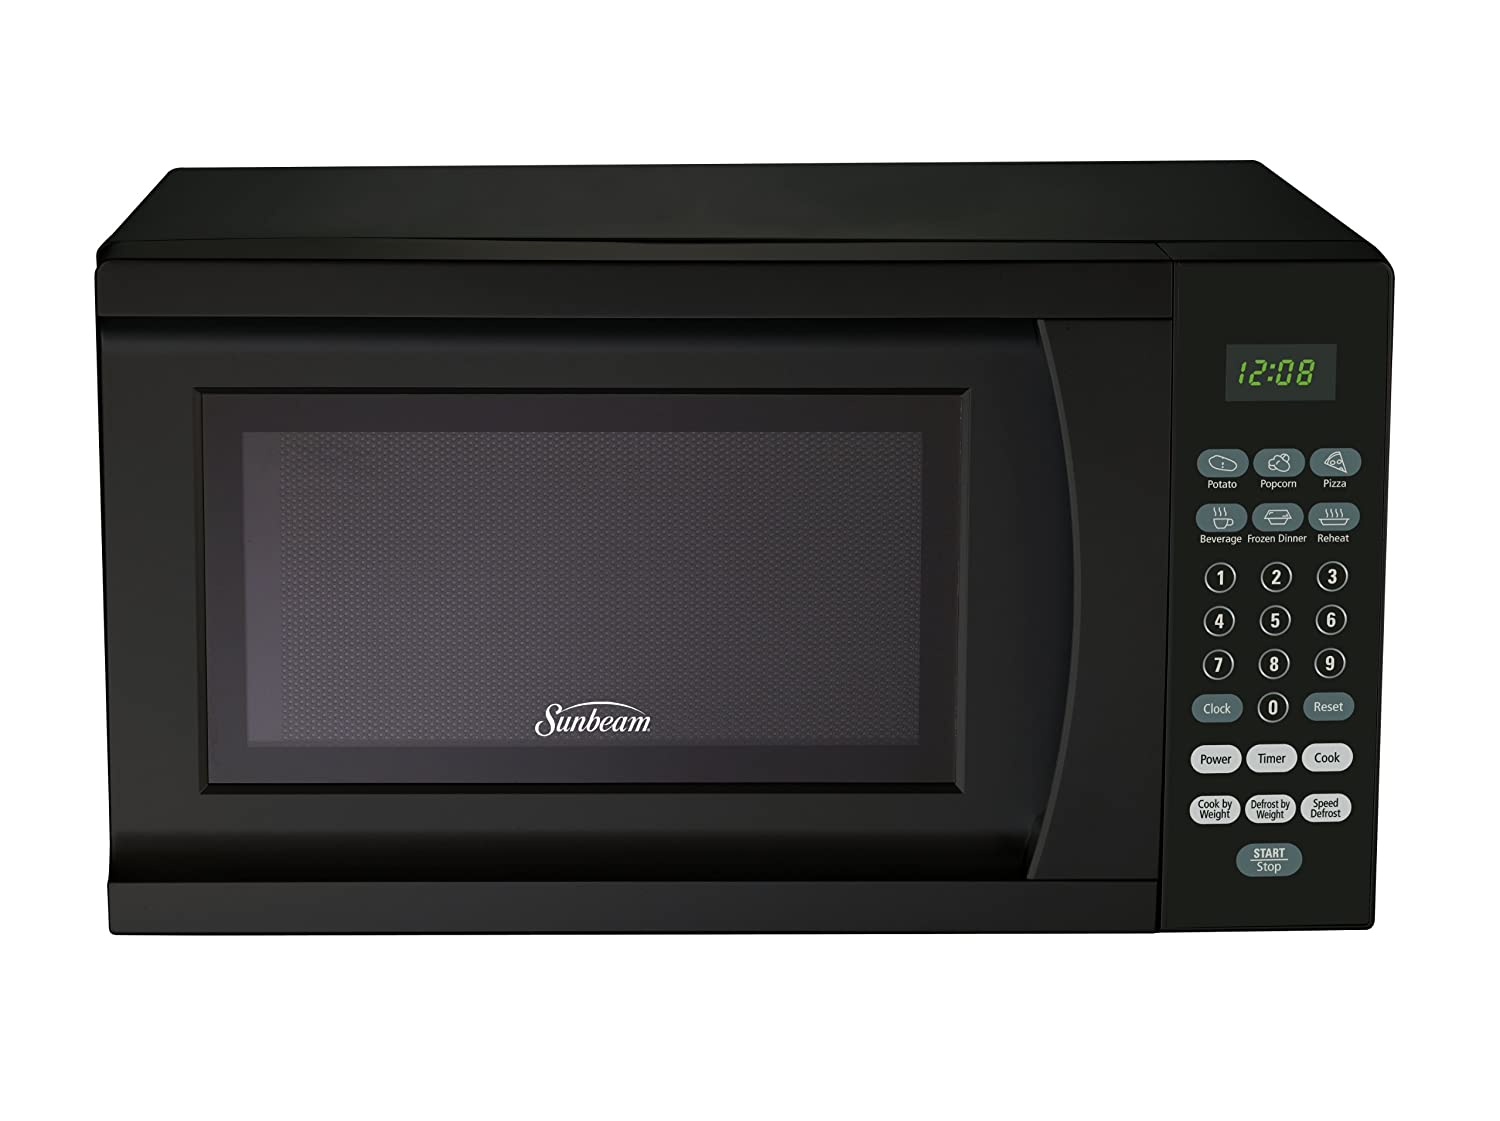 Sunbeam SGS90701B 0.7-Cubic Ft Microwave Oven, Black CHECK PRICE